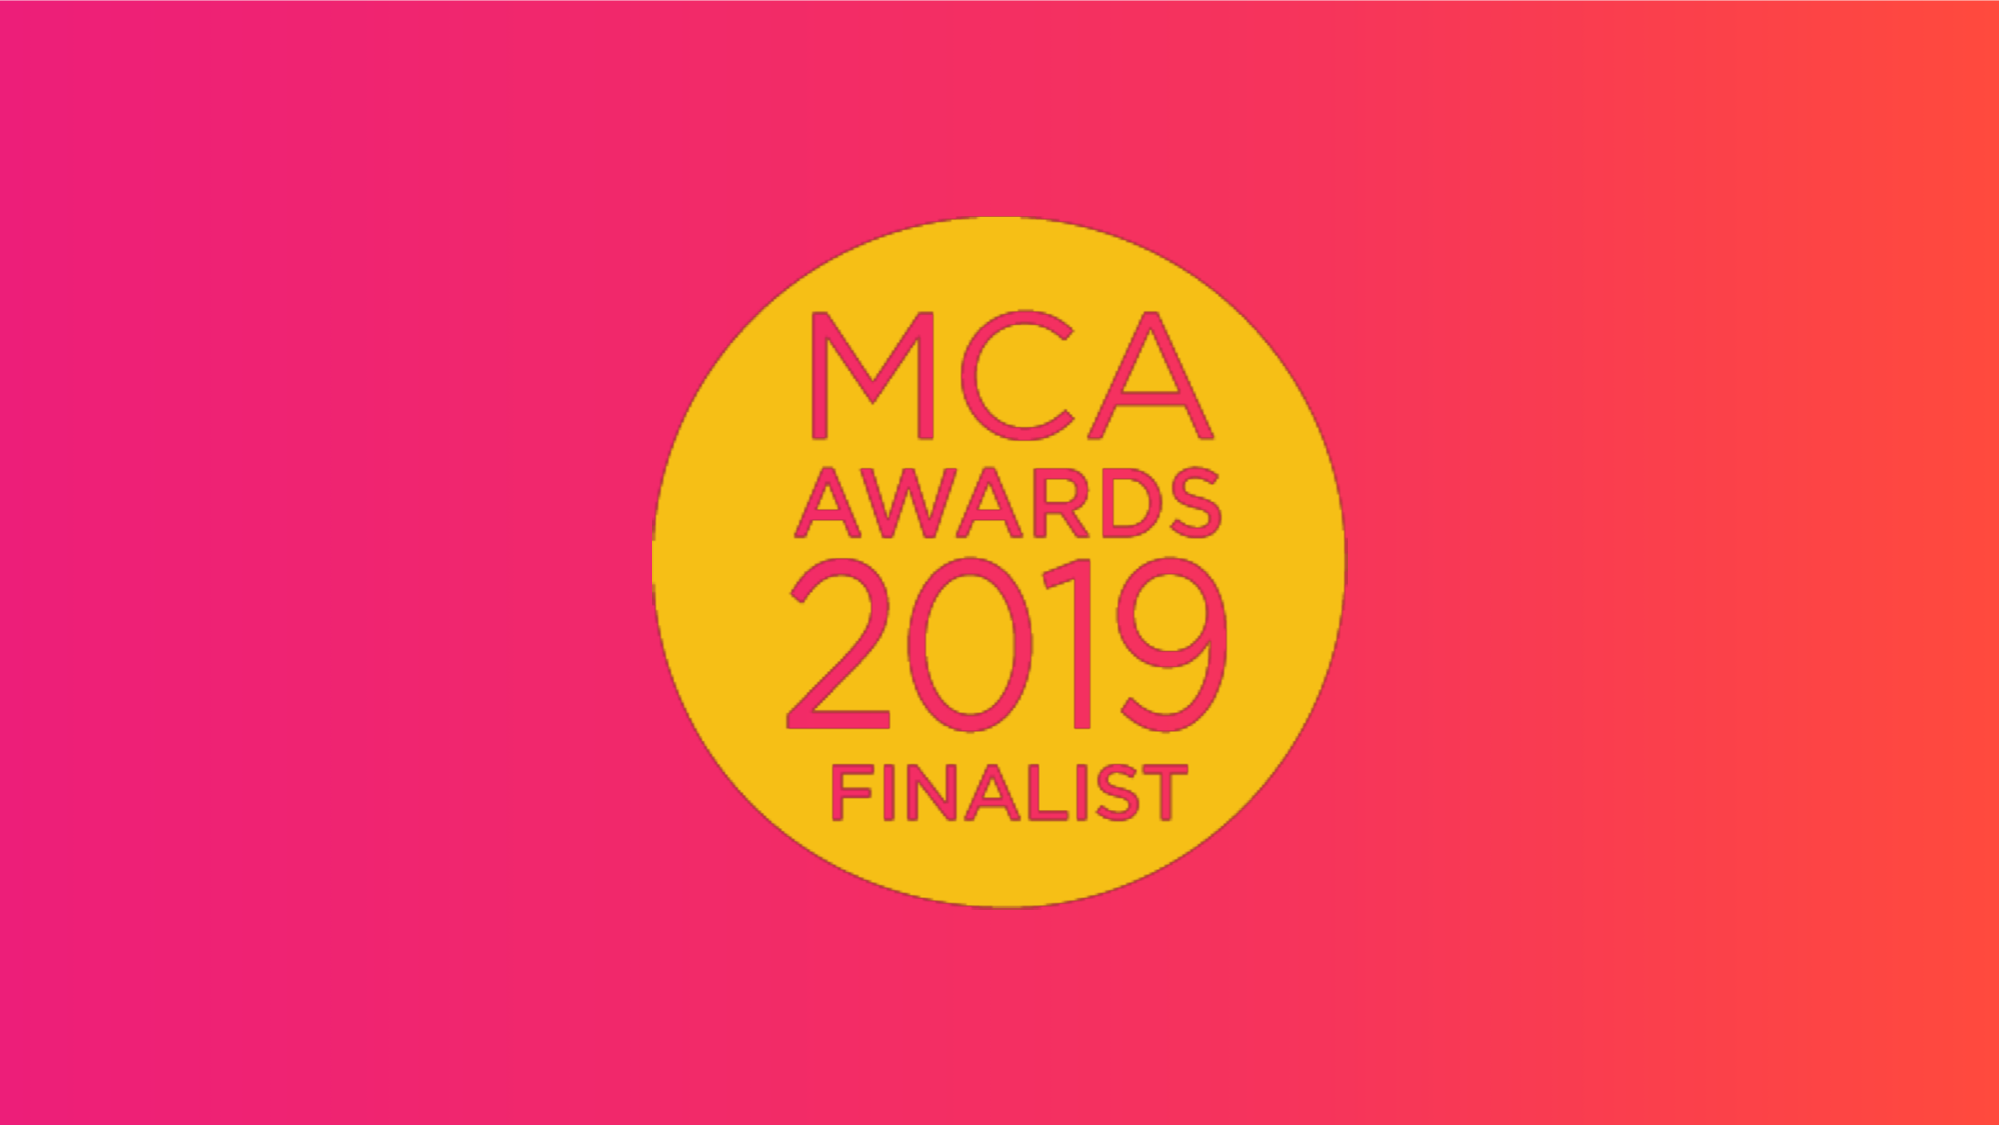 Achieve Breakthrough announced as finalist for 2019 MCA Consultancy Awards for work with EDF Energy